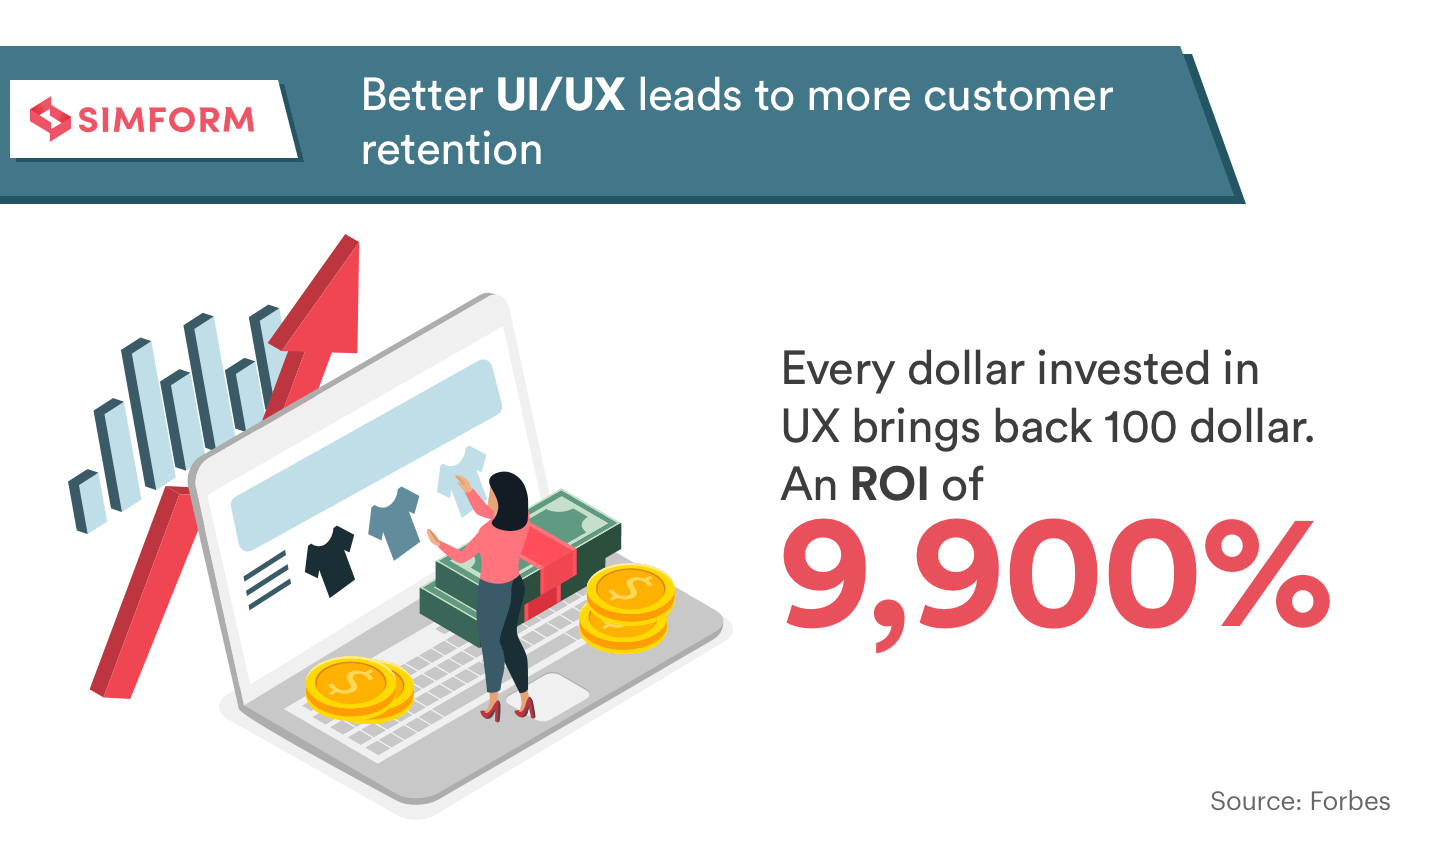 Better UI/UX leads to more customer retention